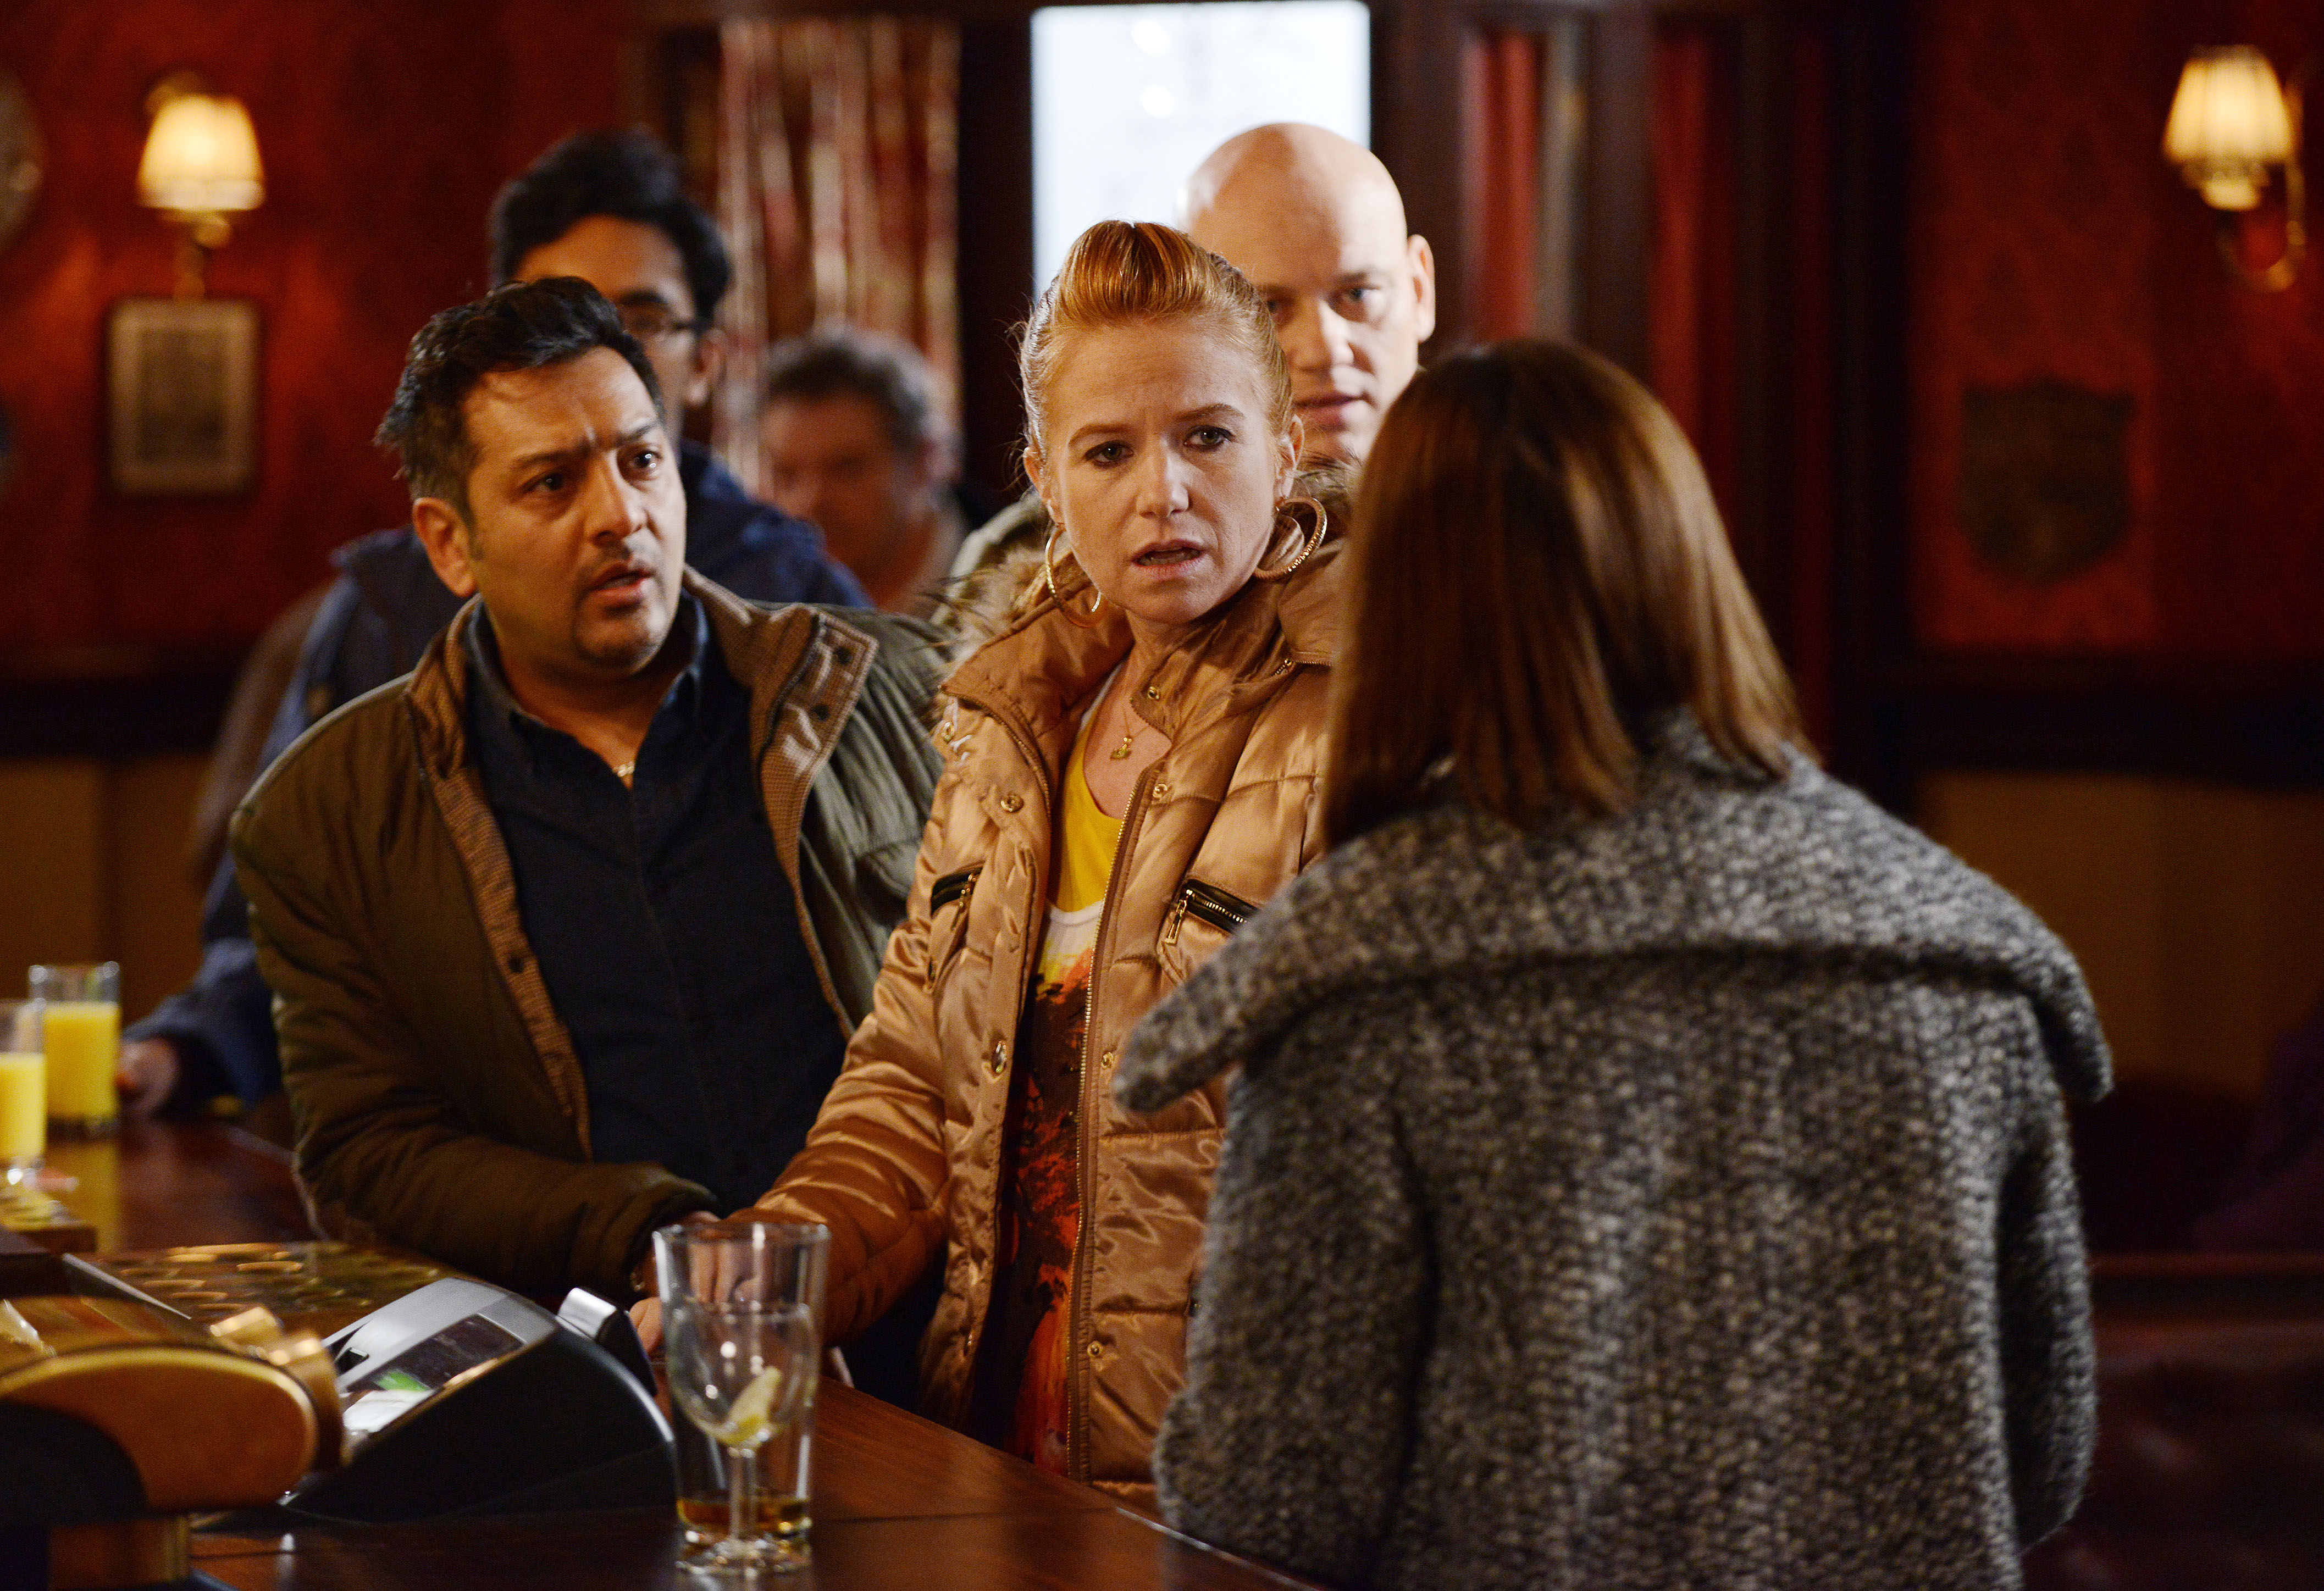 WARNING: Embargoed for publication until: 11/03/2014 - Programme Name: EastEnders - TX: 20/03/2014 - Episode: Eastenders - 4823 (No. 4823) - Picture Shows: The customers in The Vic discover the verdict of the trial. Masood Ahmed (NITIN GANATRA), Bianca Butcher (PATSY PALMER), Sonia Fowler (NATALIE CASSIDY) - (C) BBC - Photographer: Steve Peskett